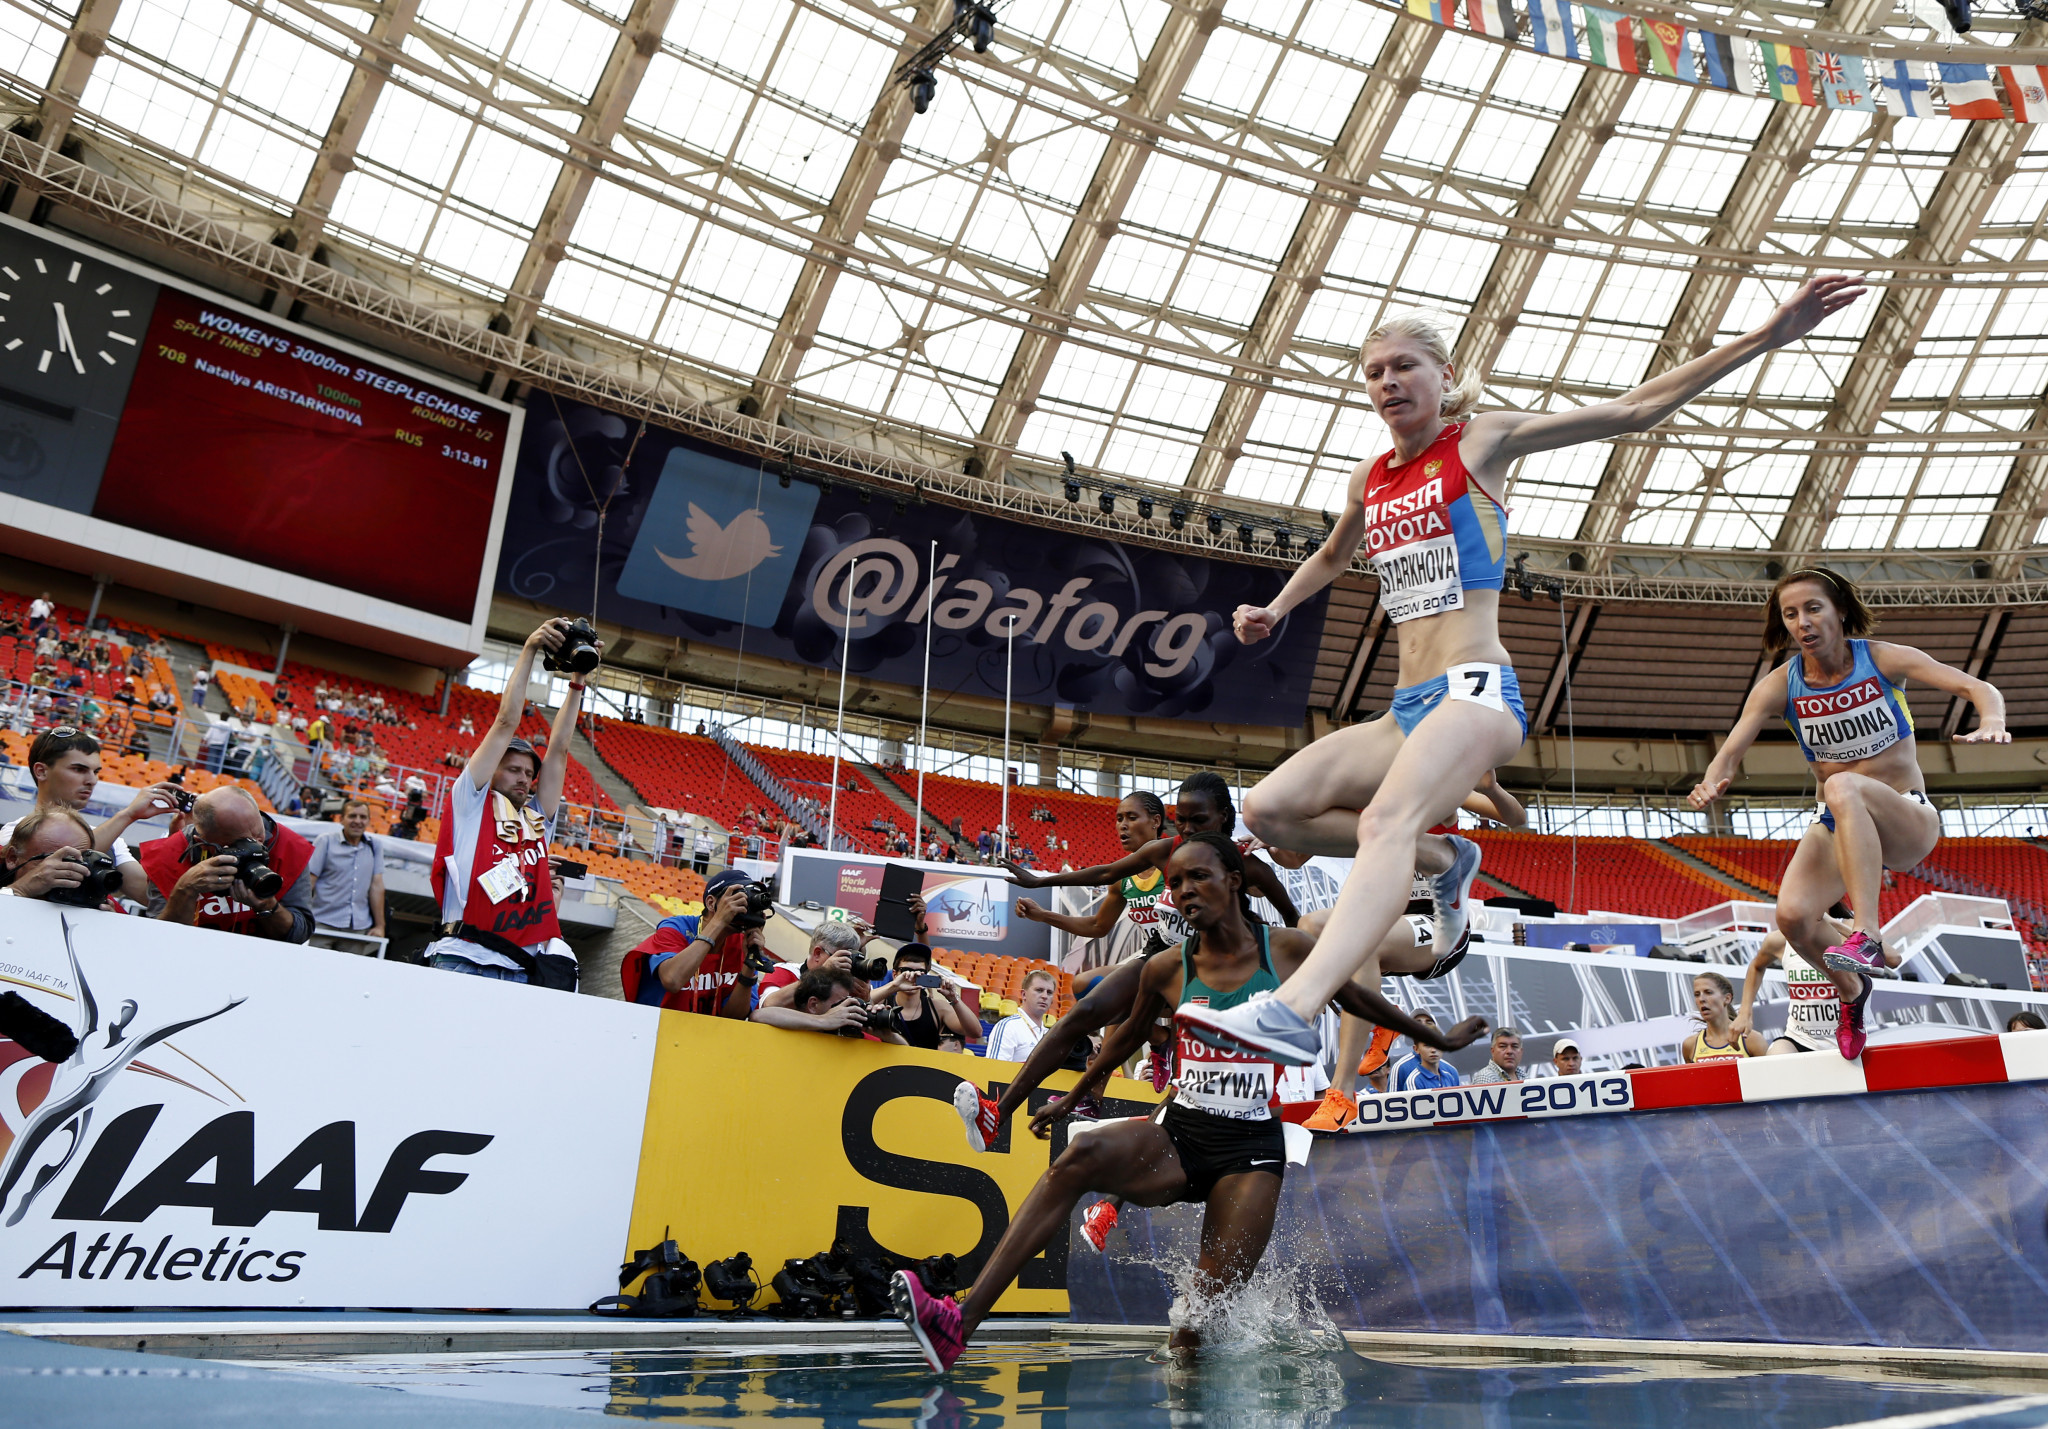 Middle-distance runner Natalya Aristarkhova, pictured here at the 2013 IAAF World Championships, is rumoured to be one of the 36 athletes who left the event in Irkutsk following the arrival of anti-doping officials ©Getty Images